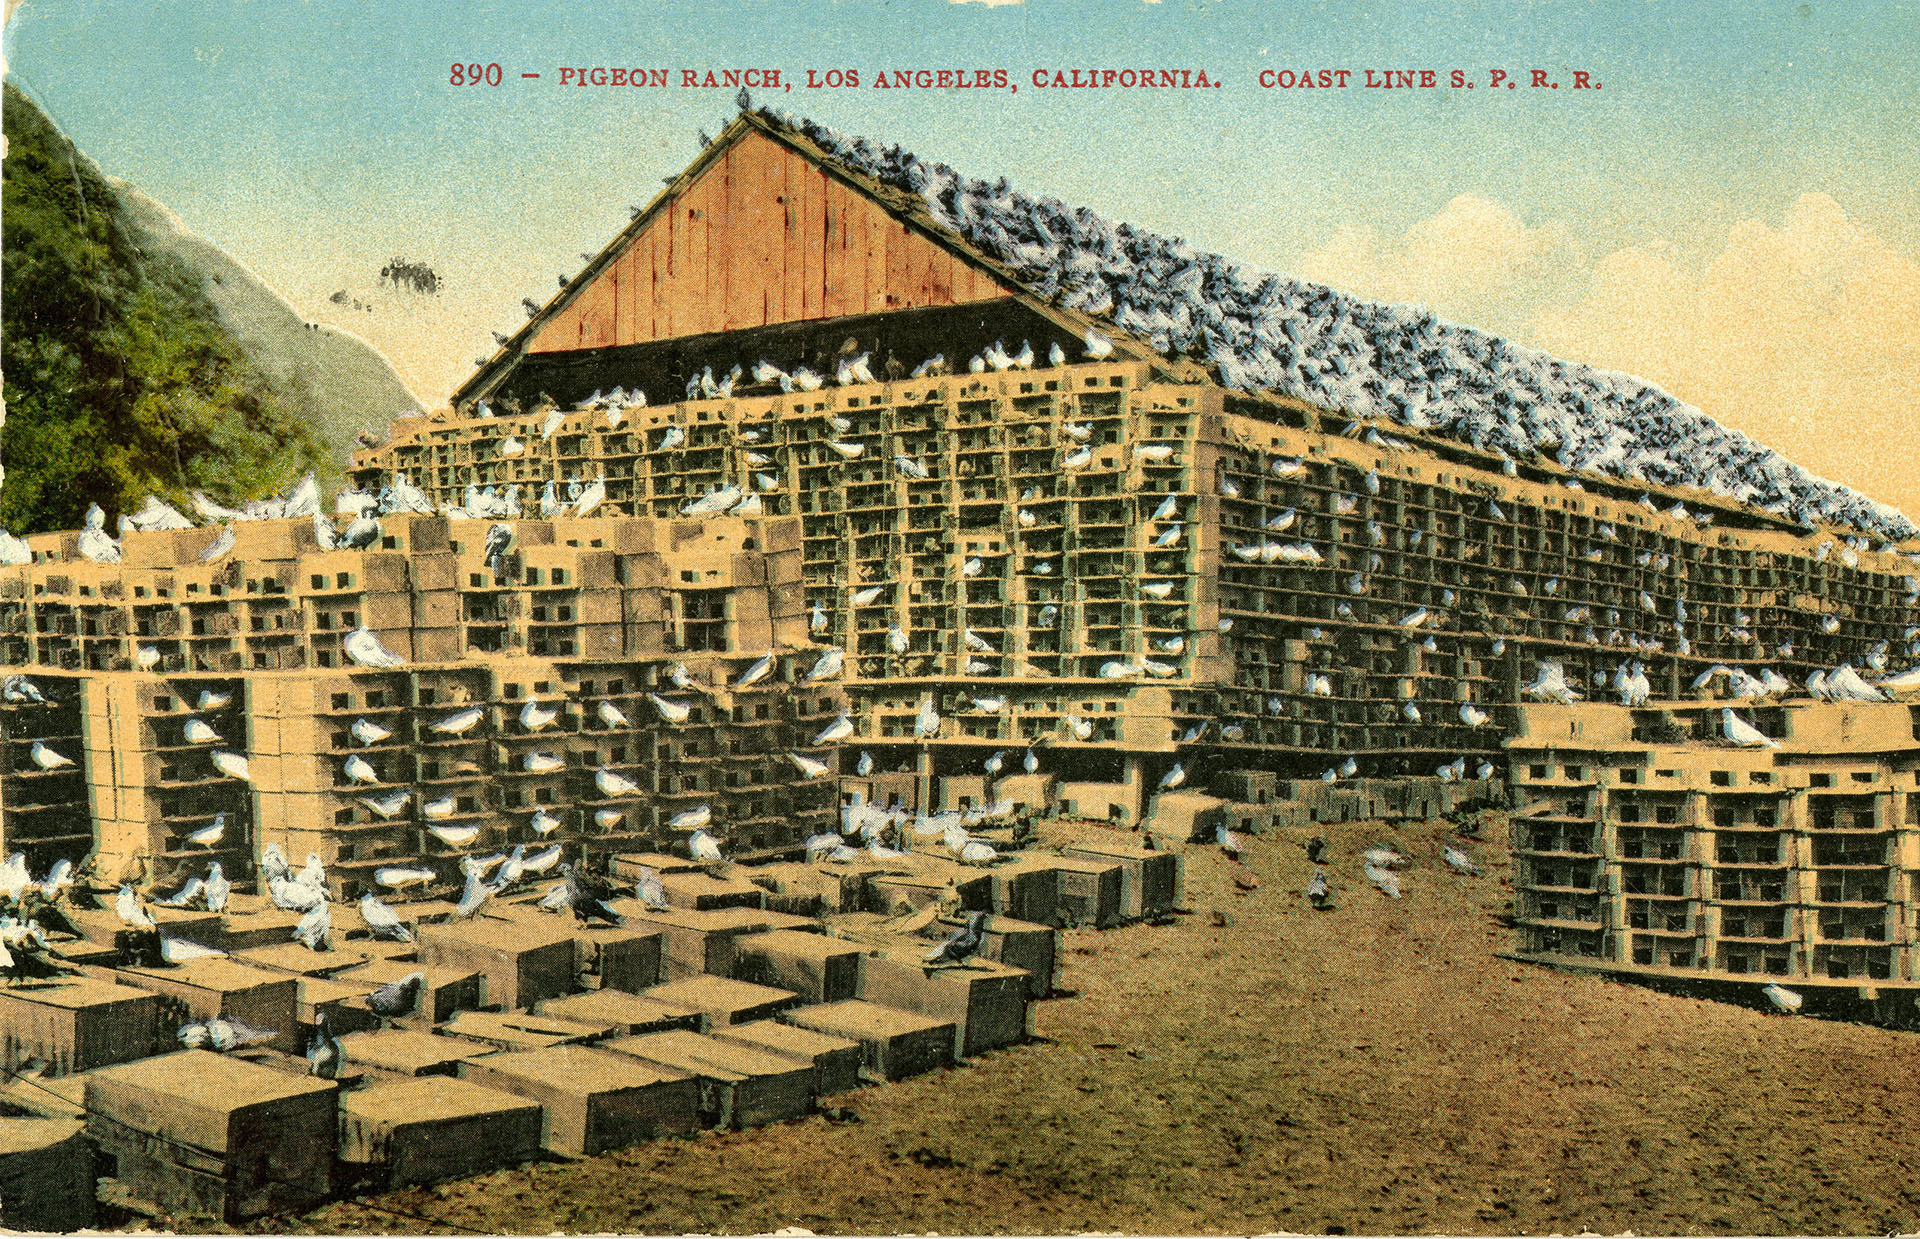 Pigeon Ranch postcard, circa 1907/14